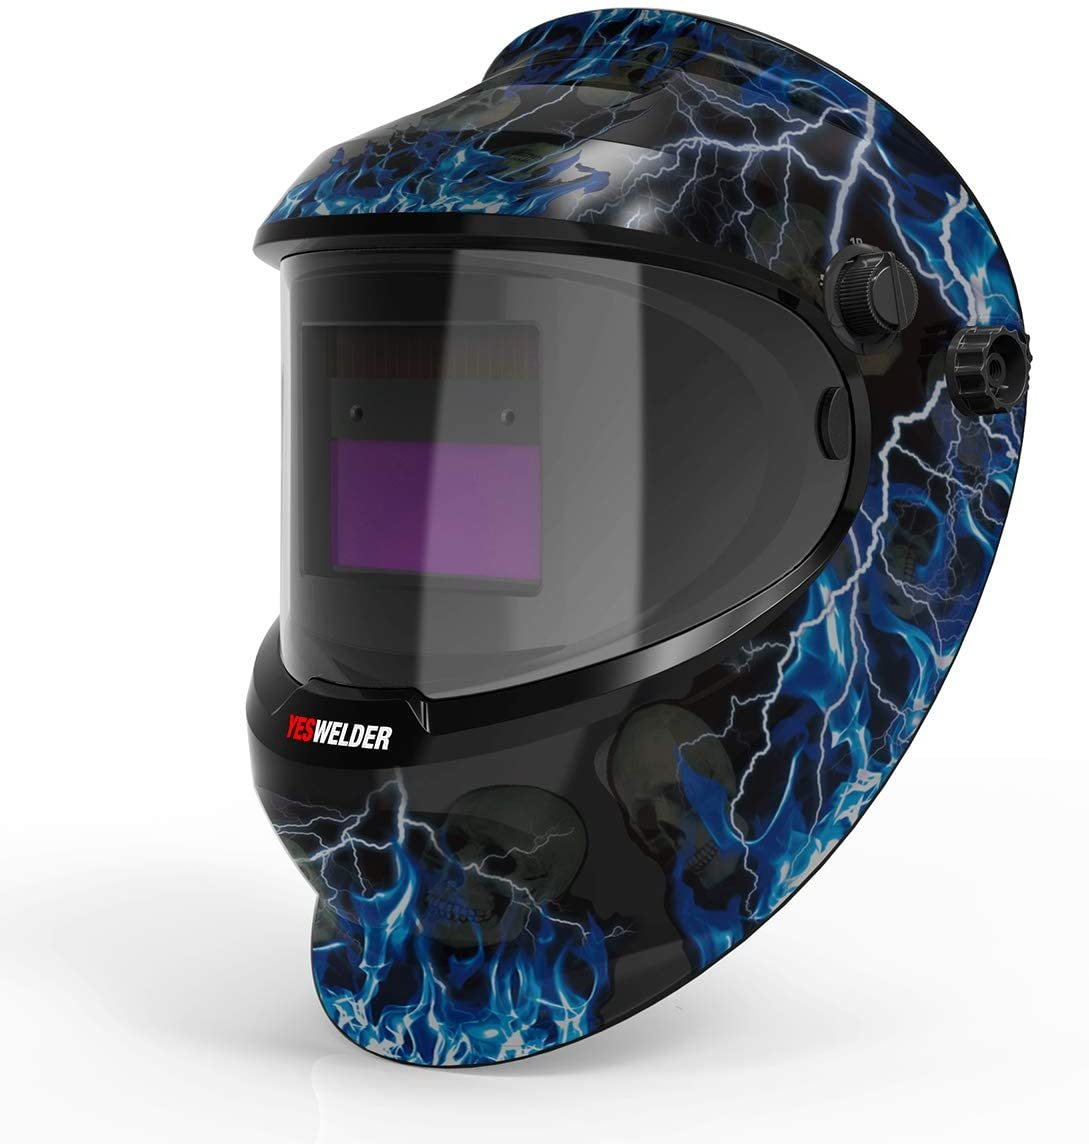 YESWELDER True Color Helmet With Adjustable Shade